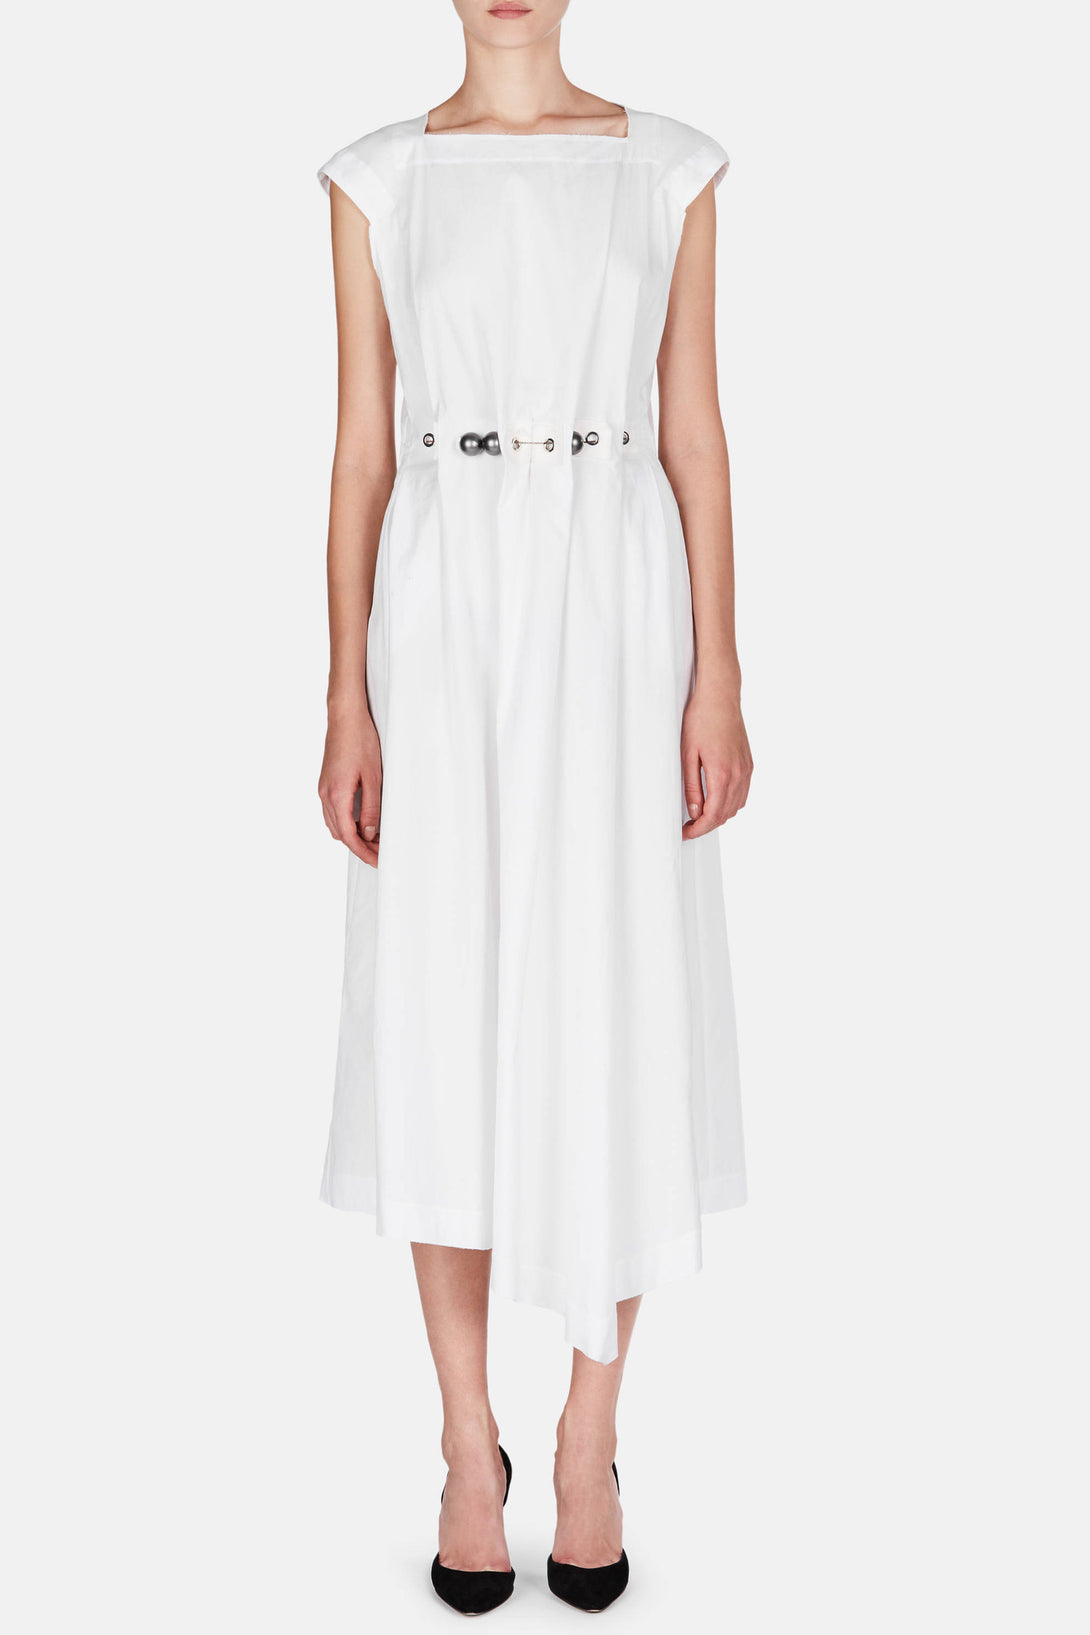 Balls & Chain Cap Sleeve Dress - White